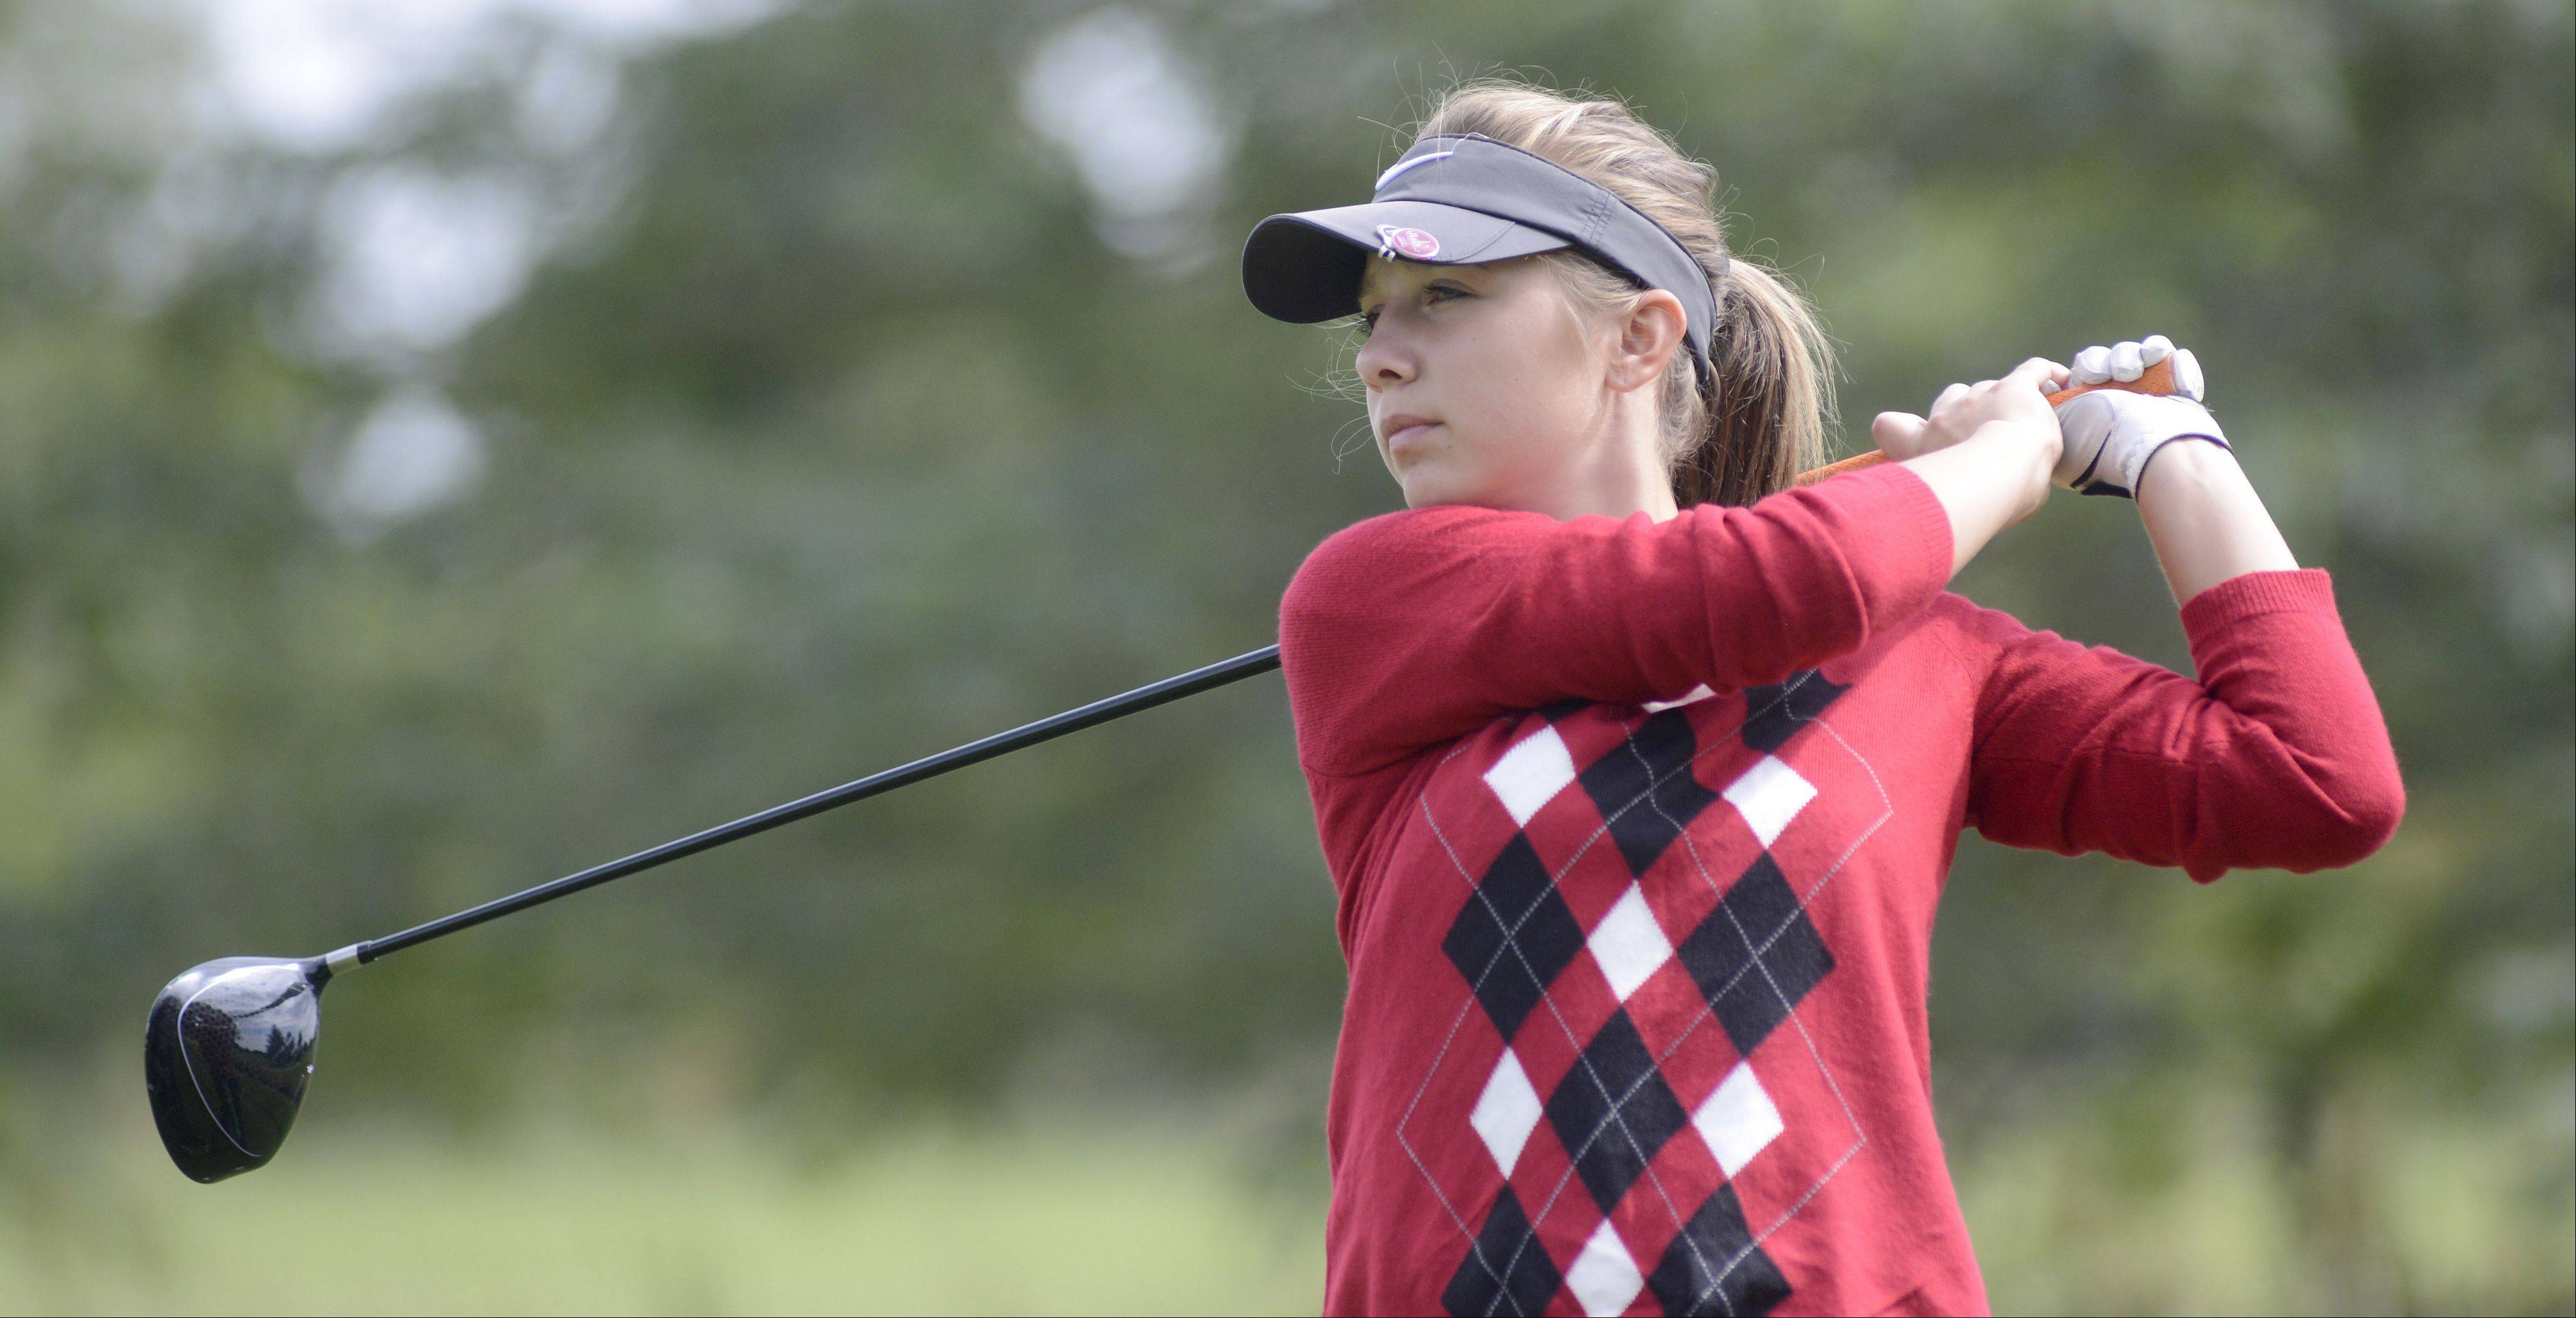 Huntley's Gillian Young tees off at the fourth hole of the Vallye course at Boone Creek Golf Club in McHenry on Tuesday.